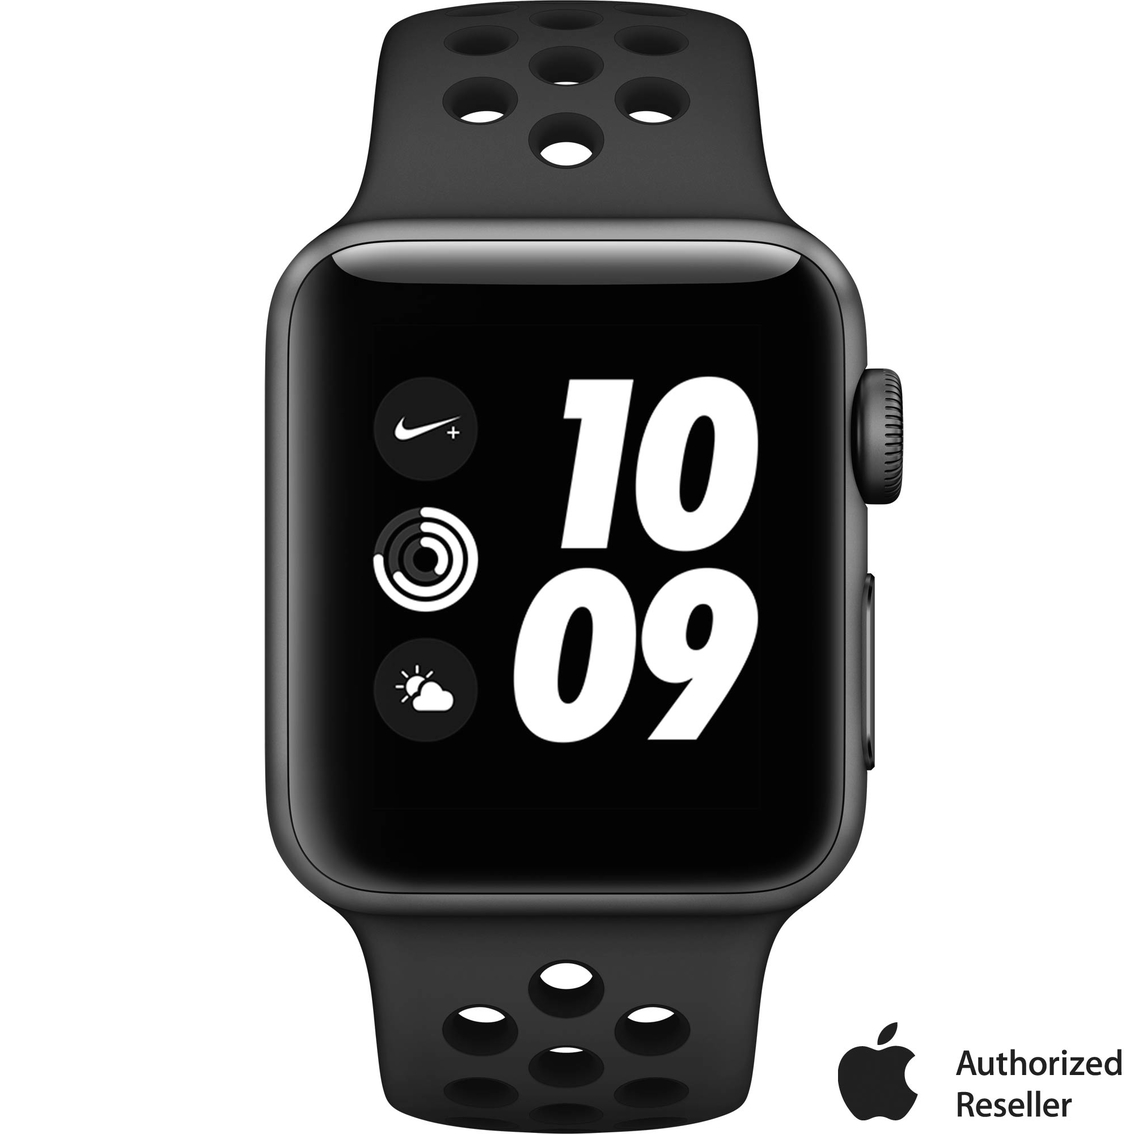 Pacer estar impresionado Visible  Apple Watch Nike+ Series 3 Gps Aluminum Case With Anthracite/black Nike  Sport Band | Apple Watches | Electronics | Shop The Exchange